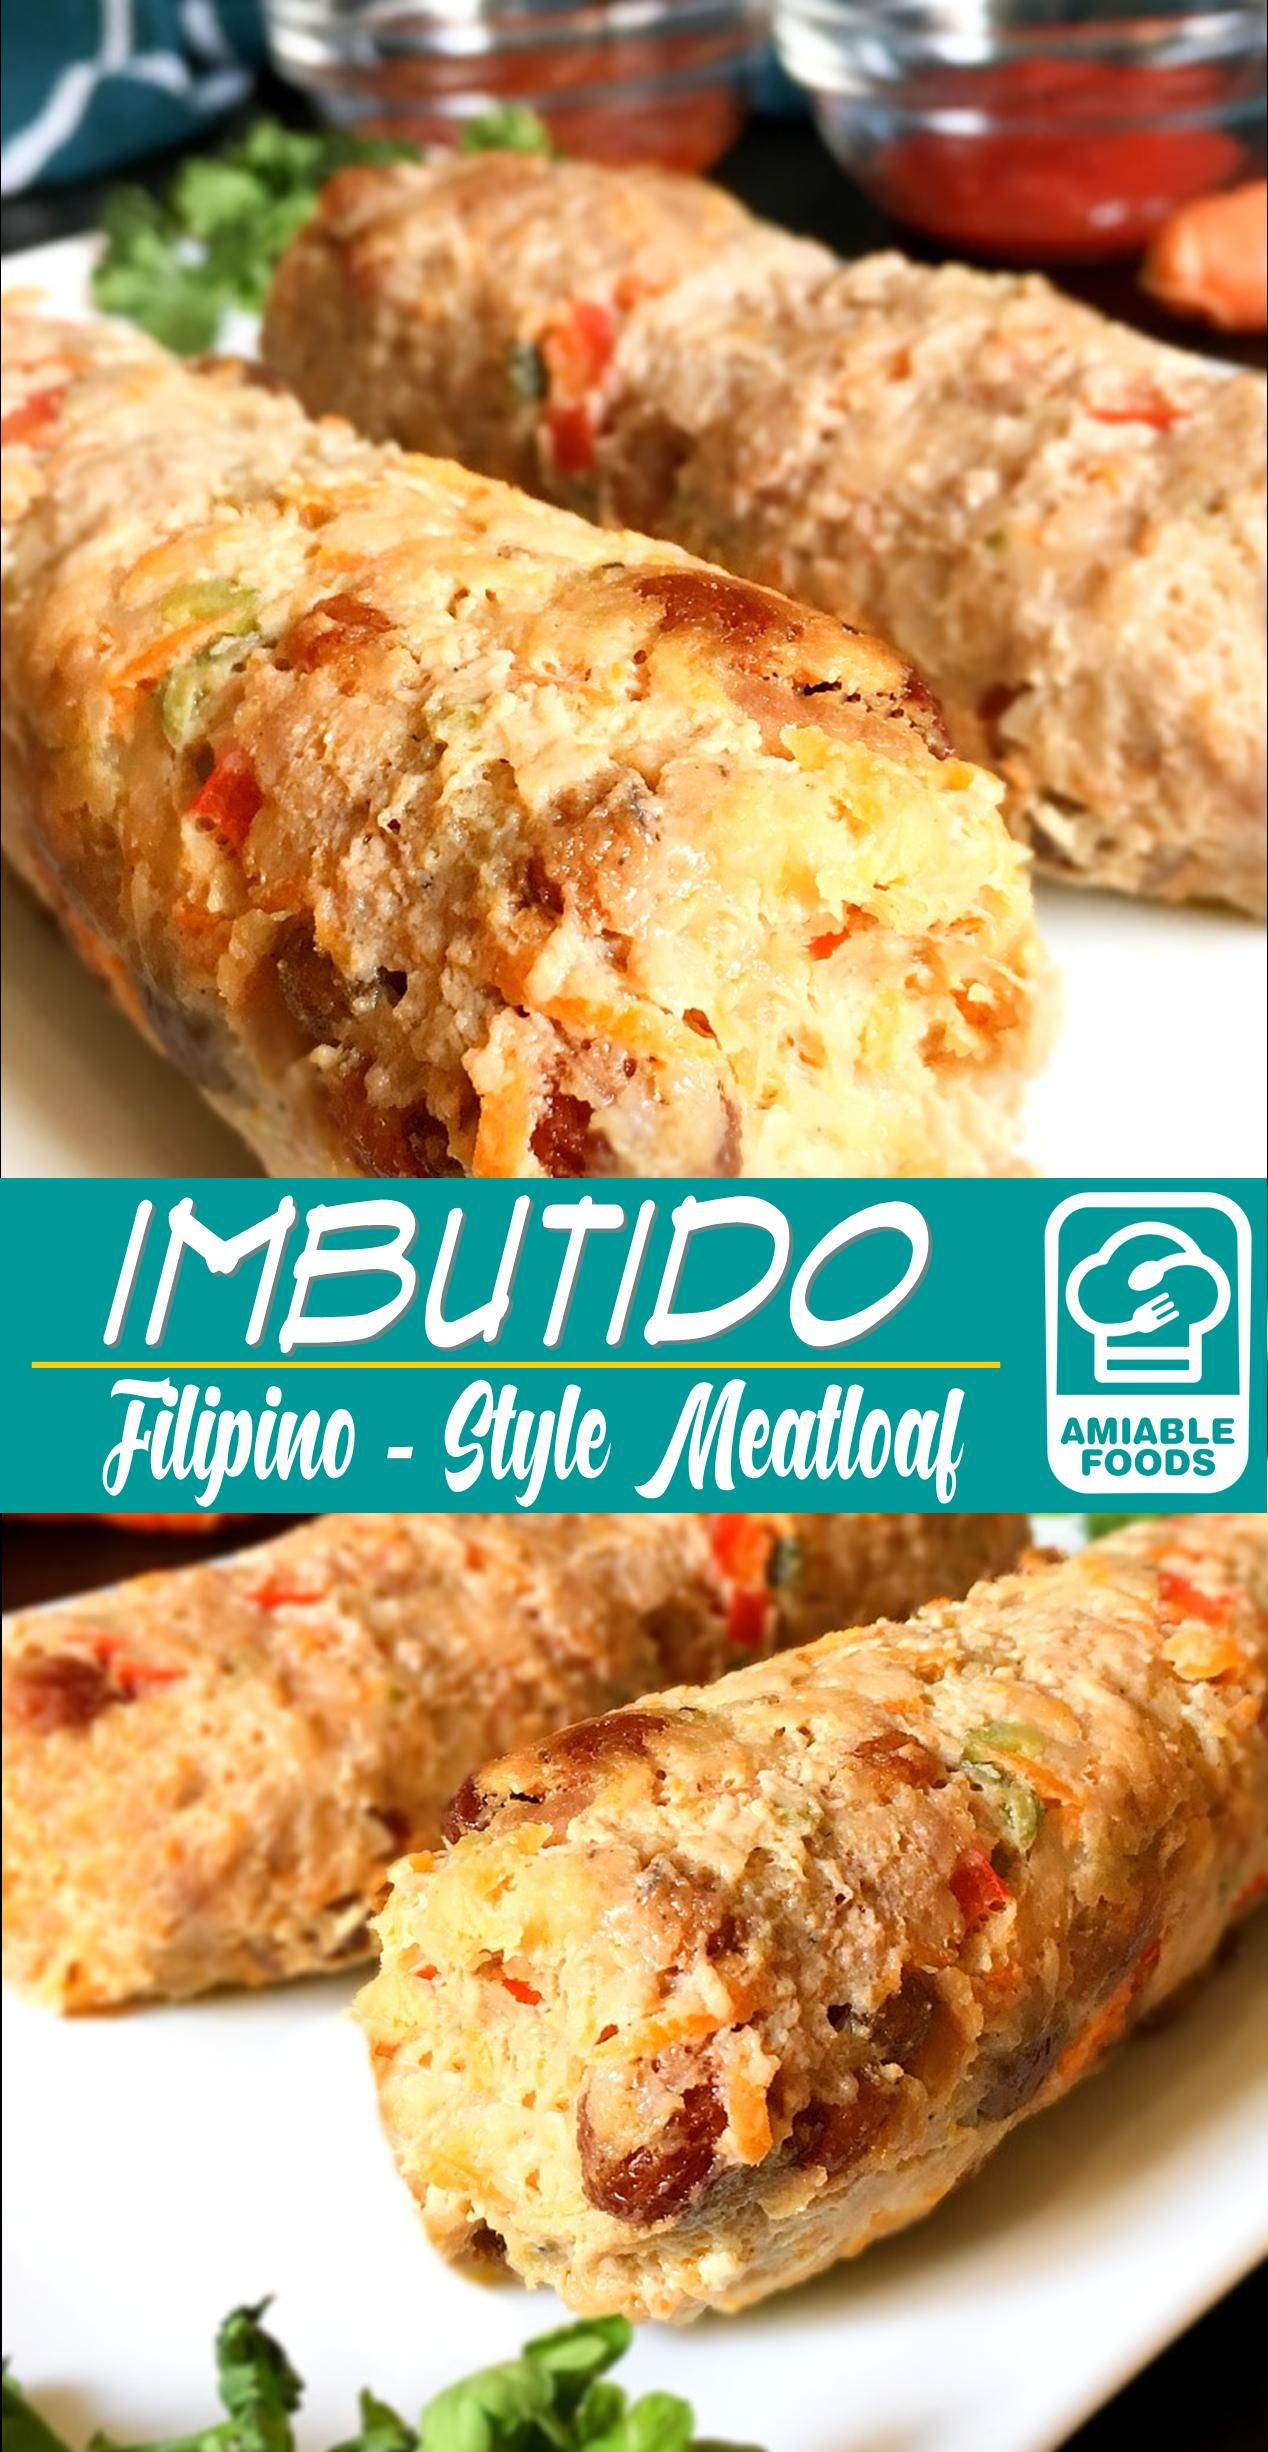 Embutido Easy Steam Or Oven Baked Filipino Meatloaf Amiable Foods Recipe Embutido Recipe Food Recipes